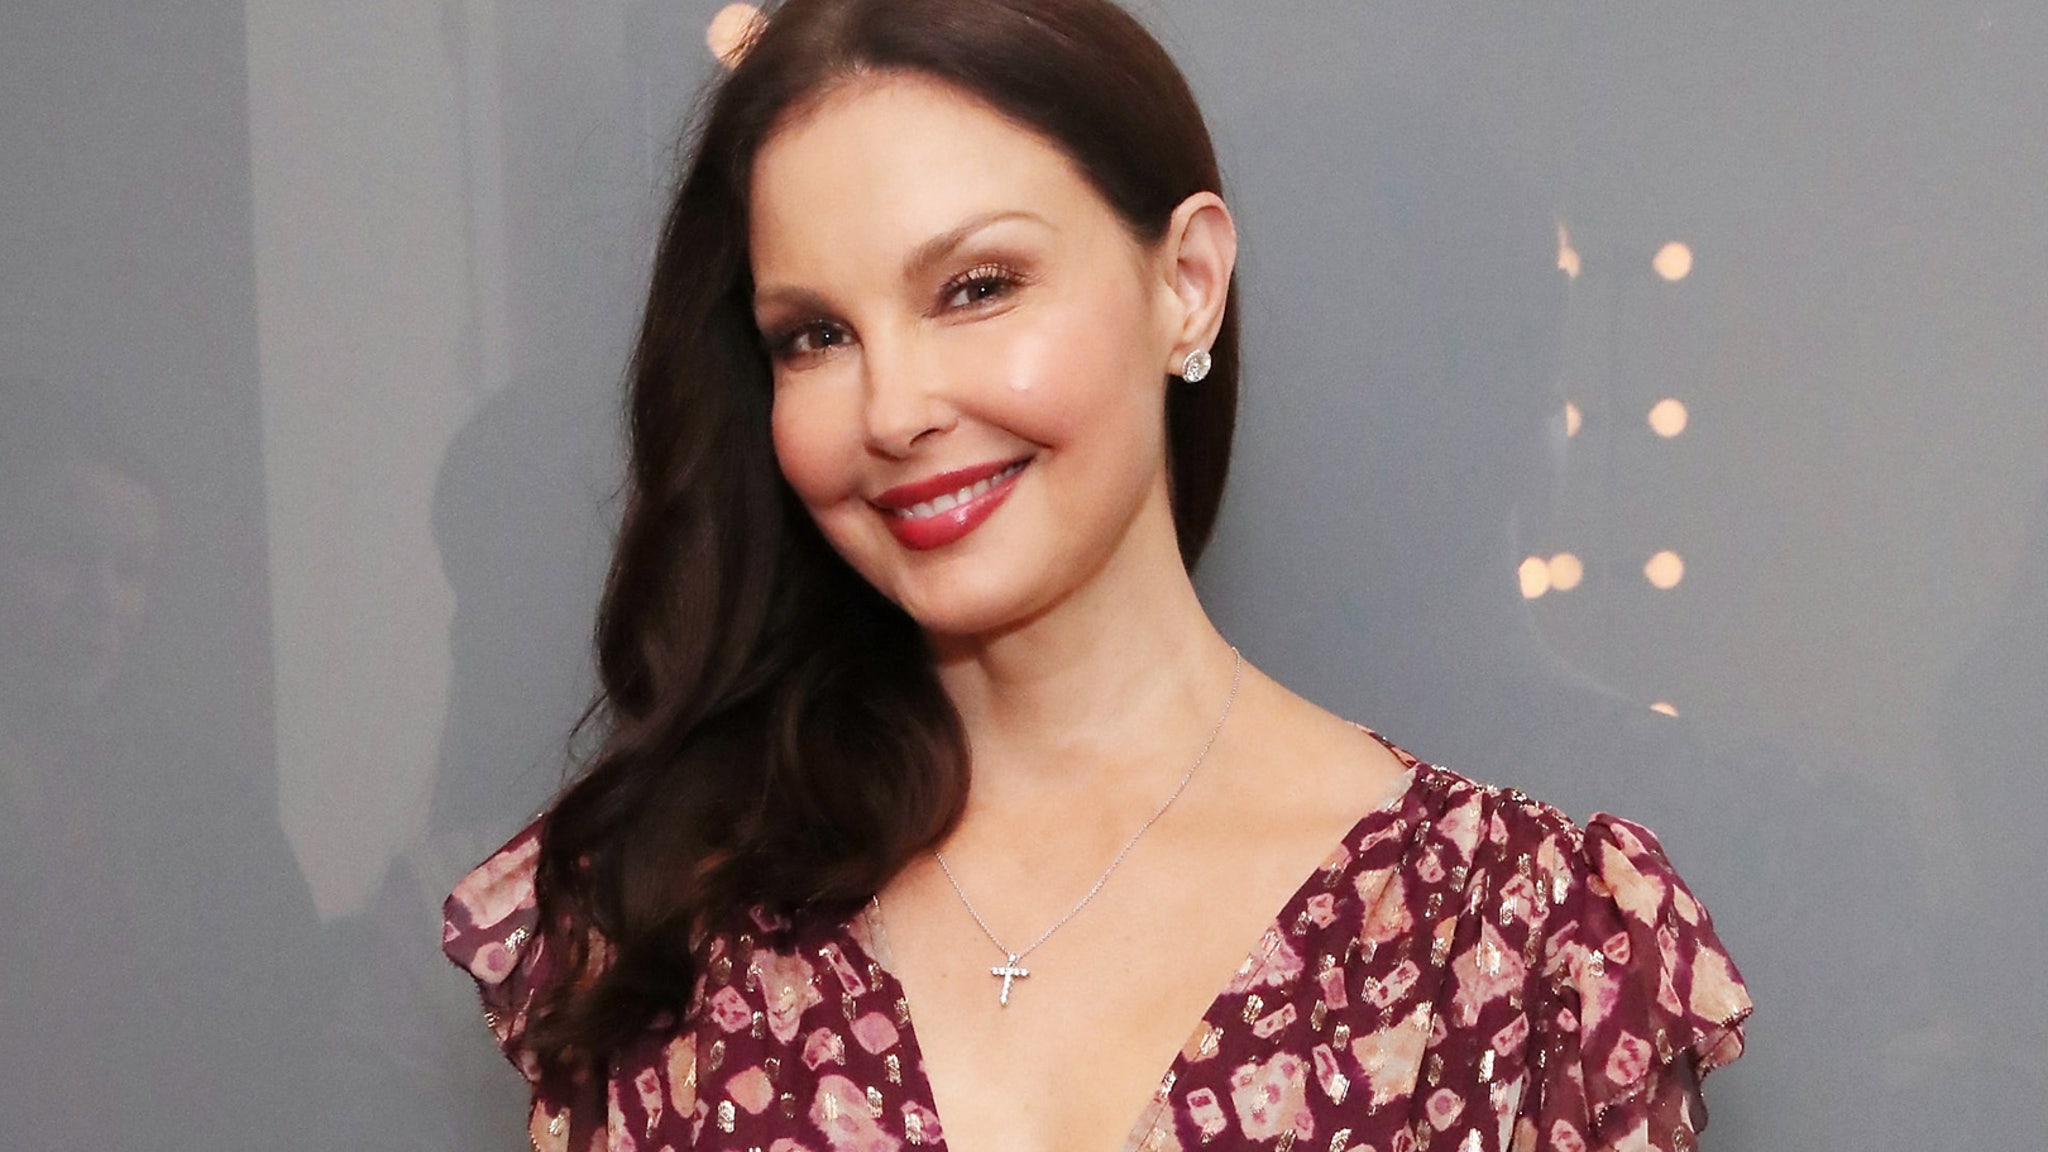 Ashley Judd walks again six months after breaking her leg in Congo